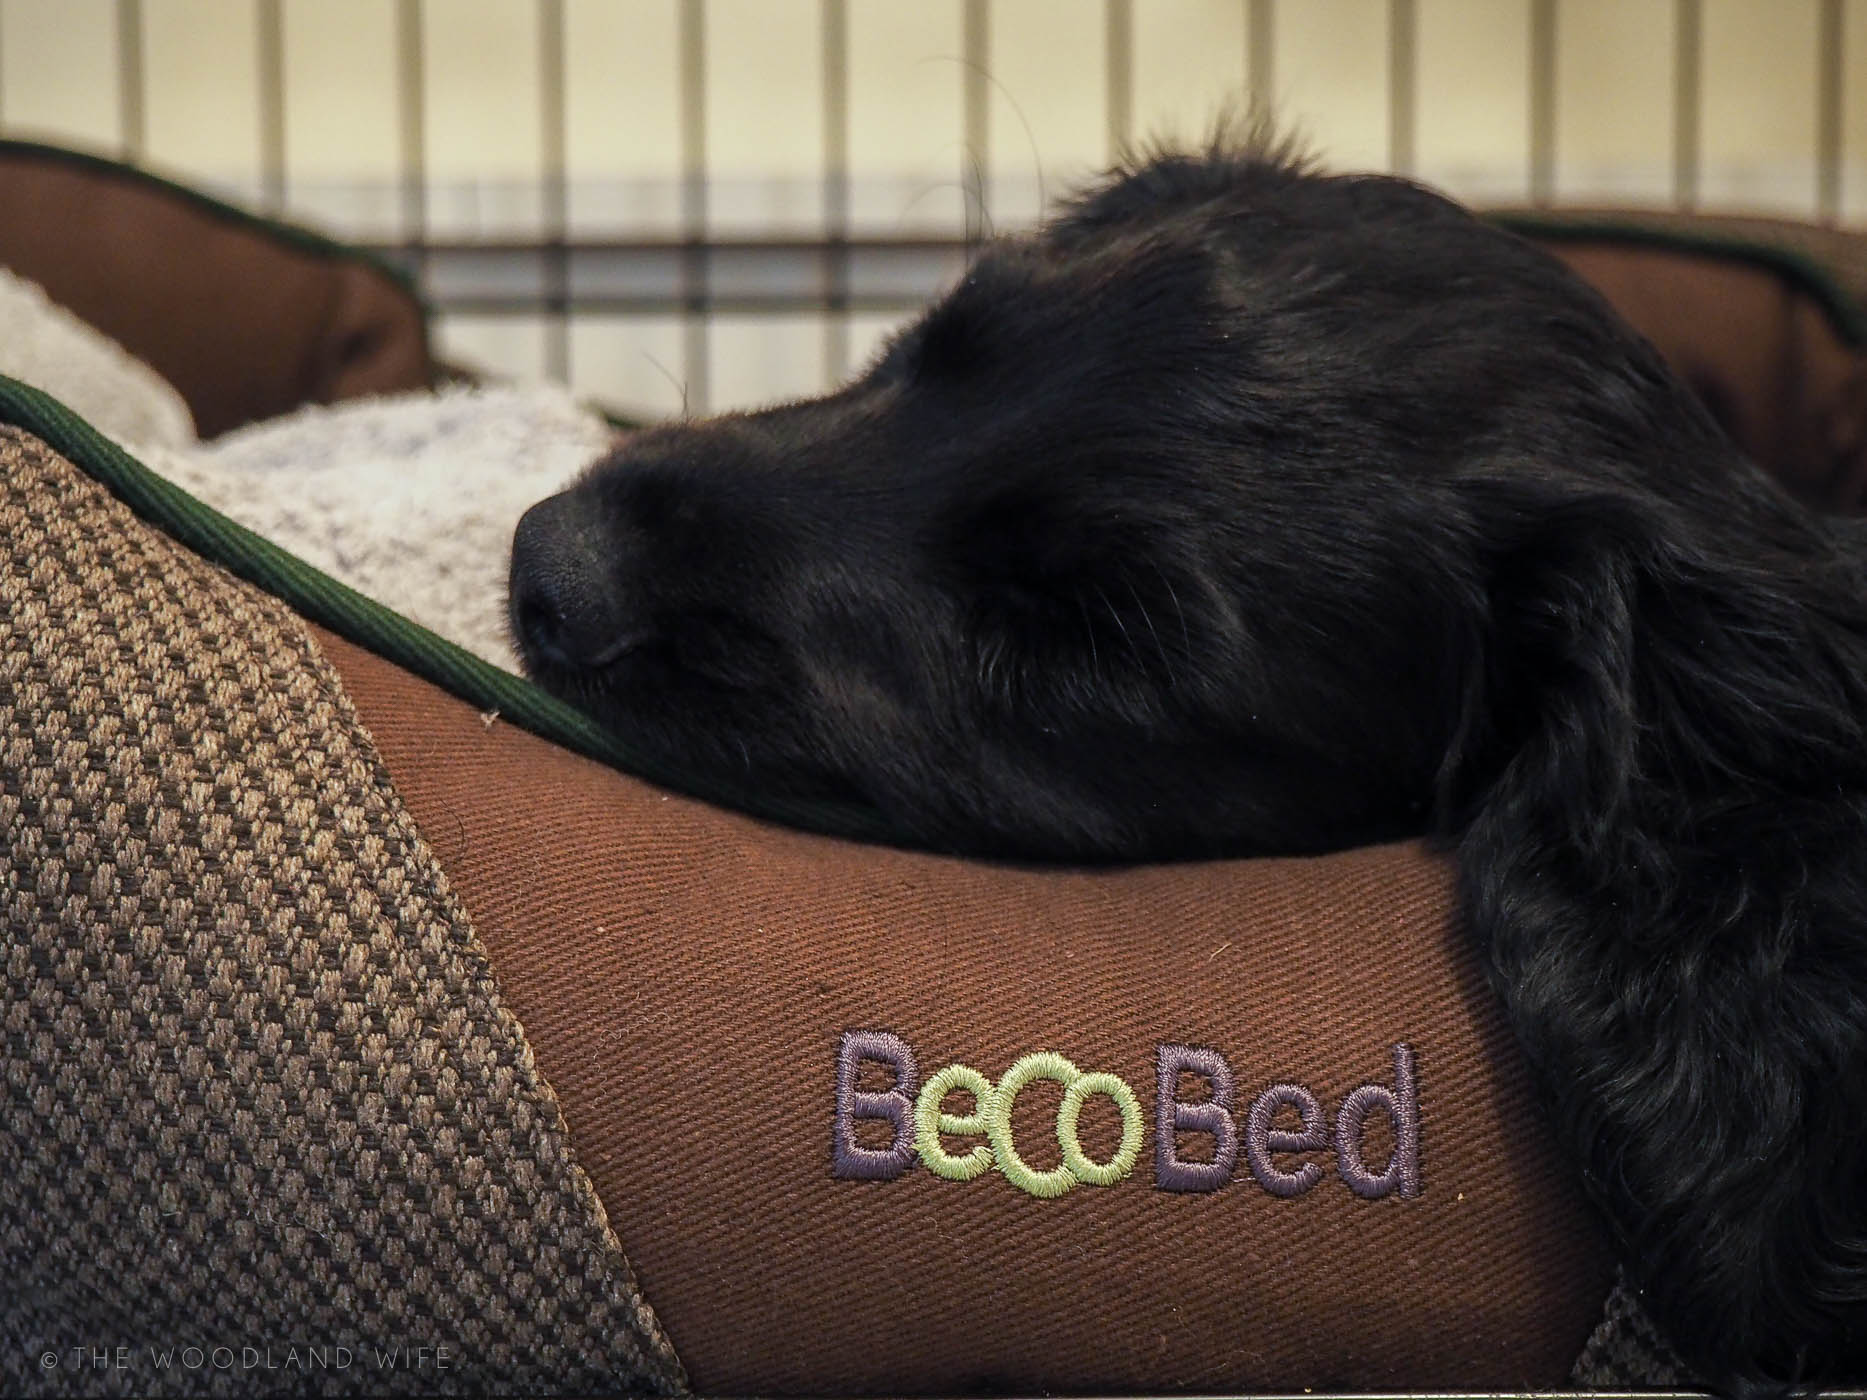 The Woodland Wife - Beco Pets - Beco Bed, Donut Bed, Eco Dog Bed